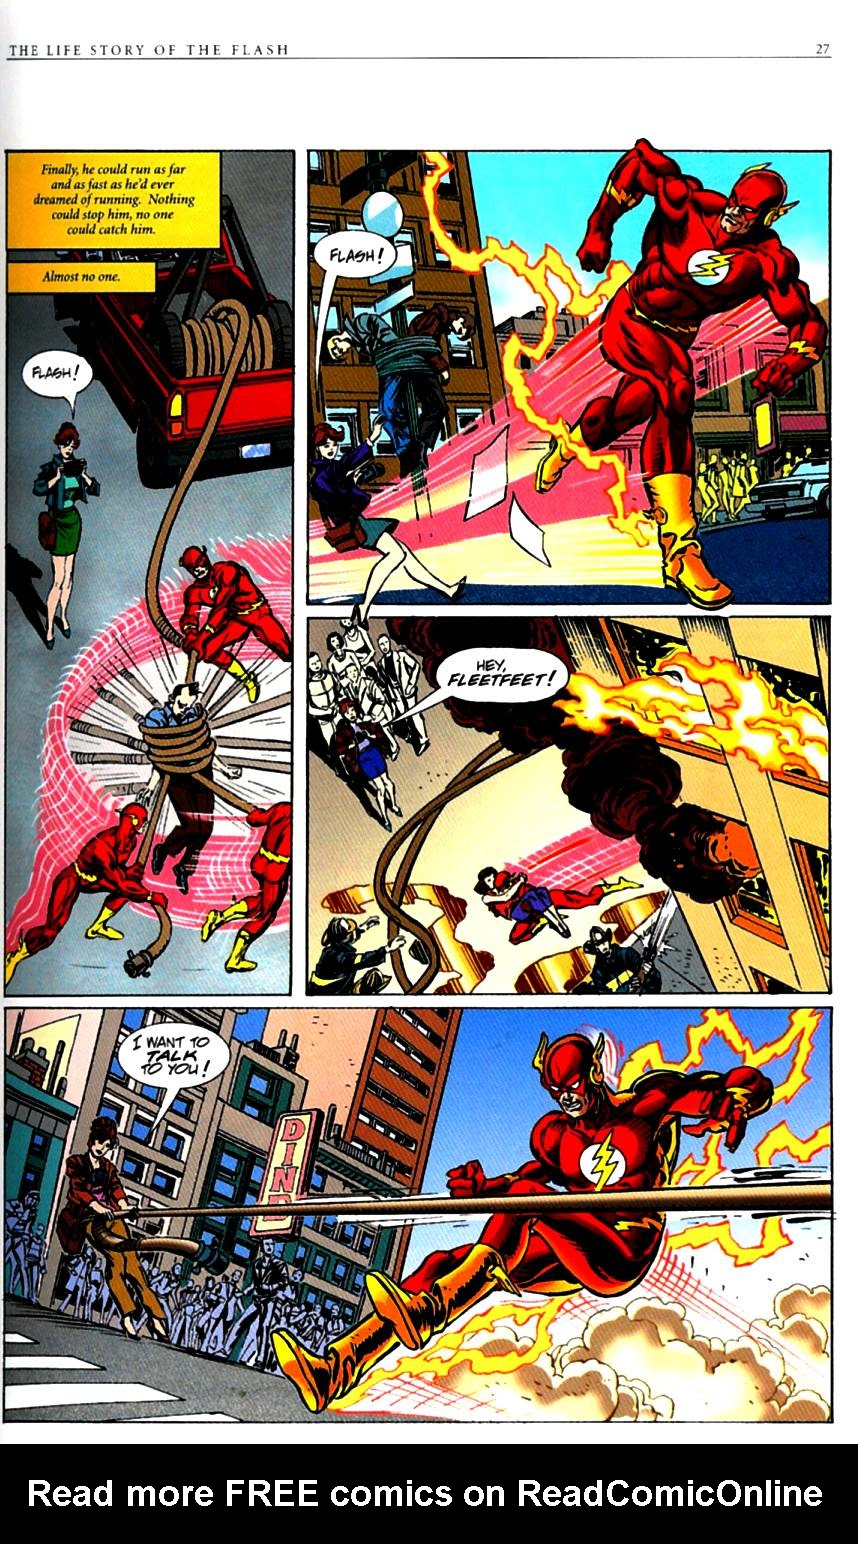 Read online The Life Story of the Flash comic -  Issue # Full - 29